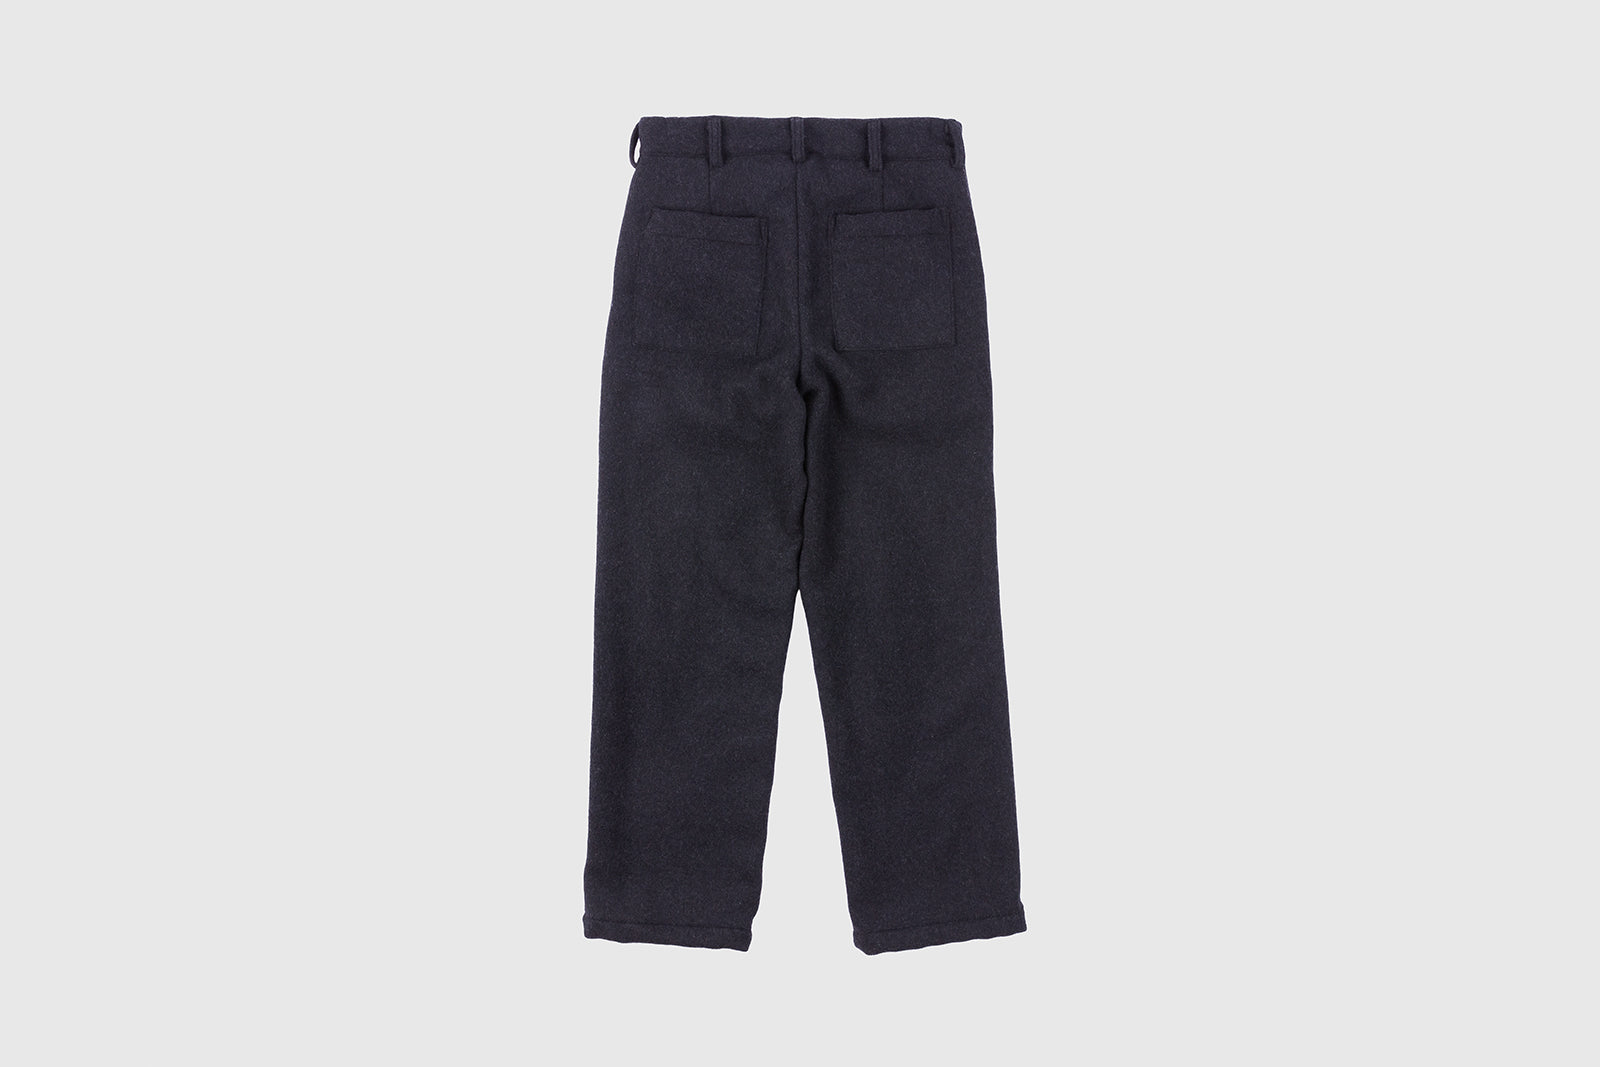 PAA DOUBLE PLEAT PANT